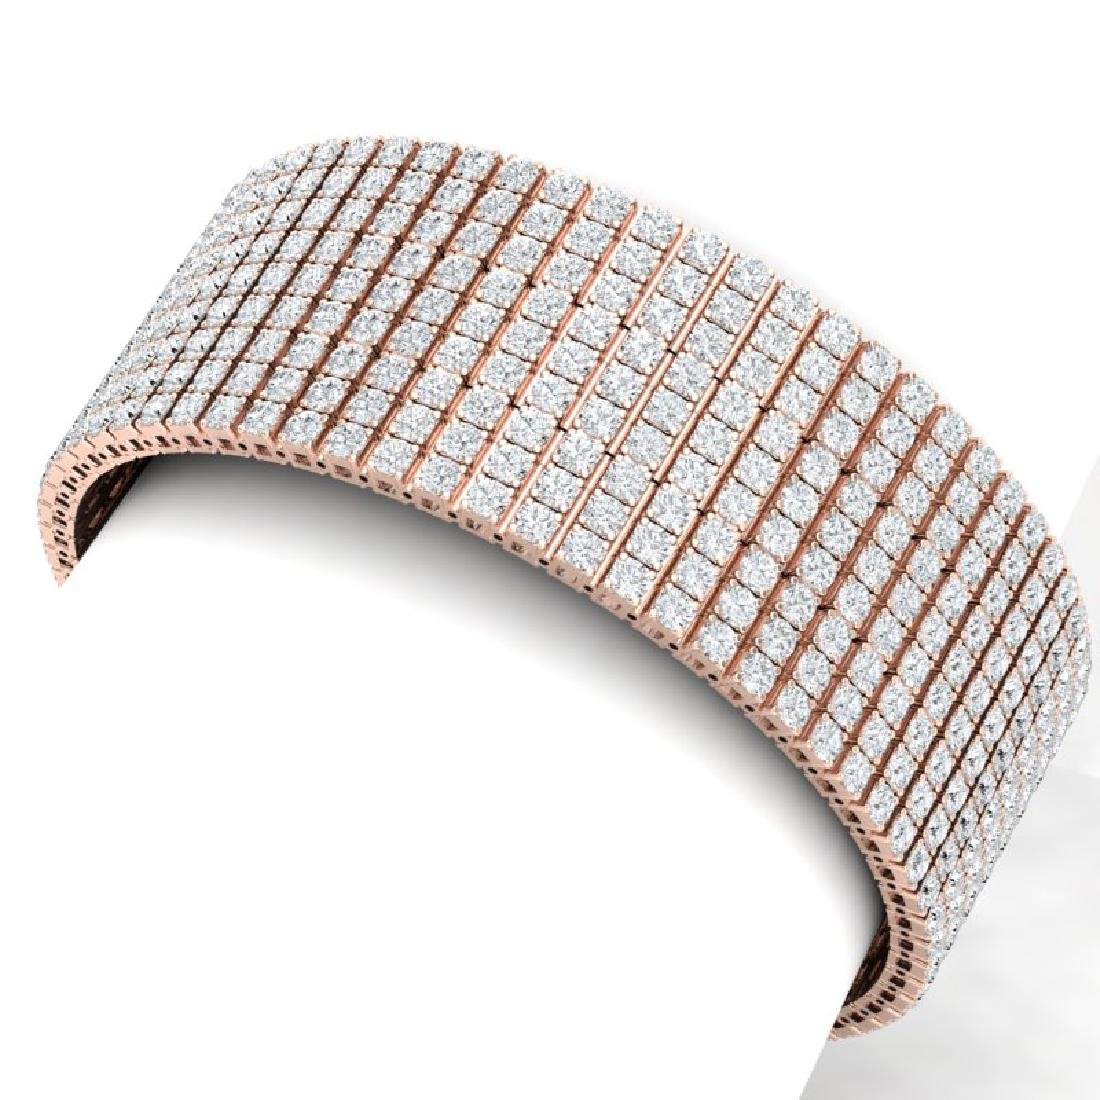 40 CTW Certified VS/SI Diamond Bracelet 18K Rose Gold